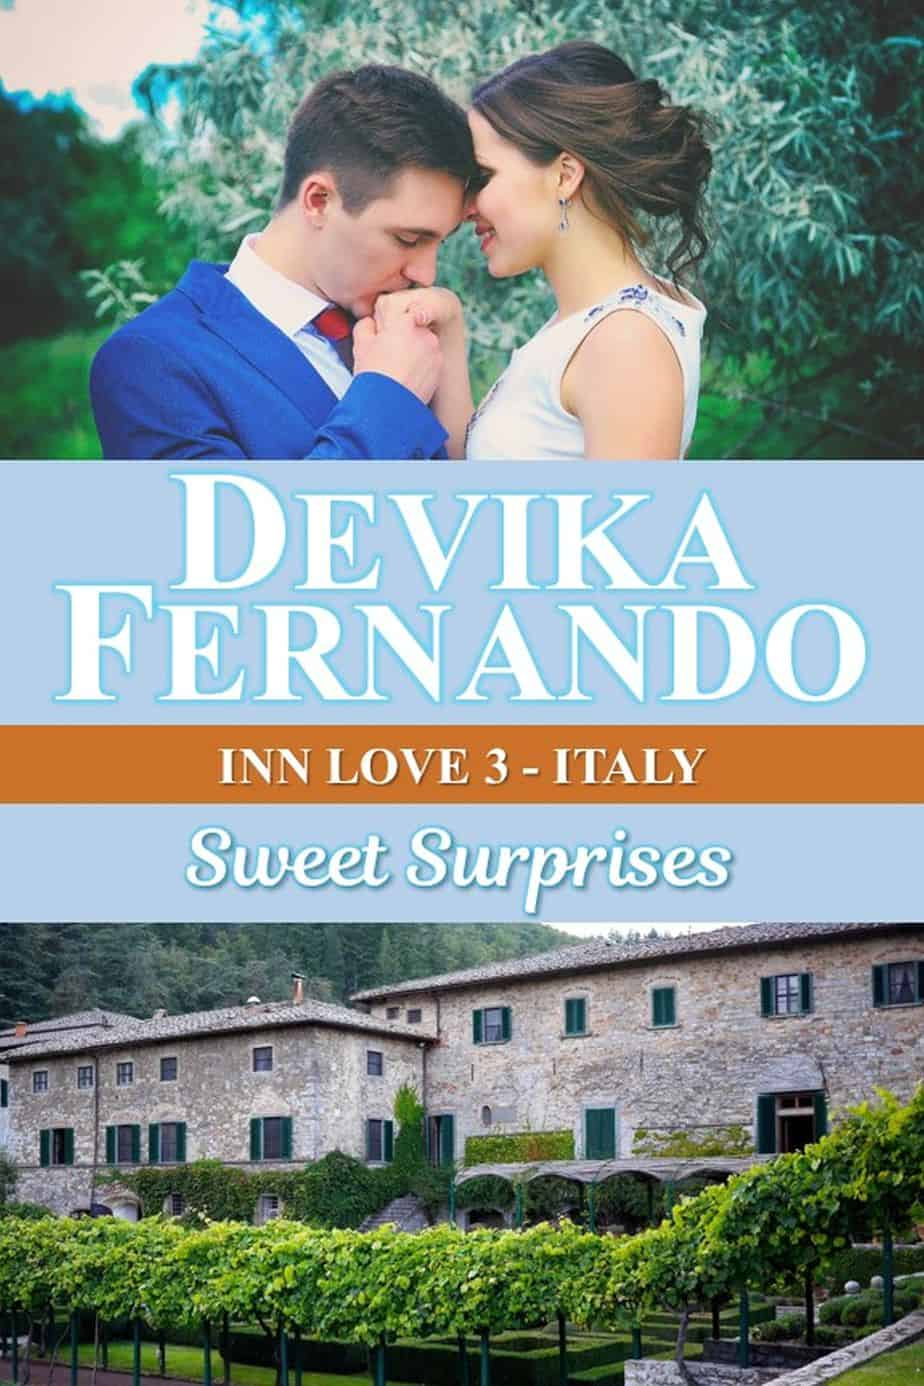 #SweetSurprises Inn Love By Devika Fernando